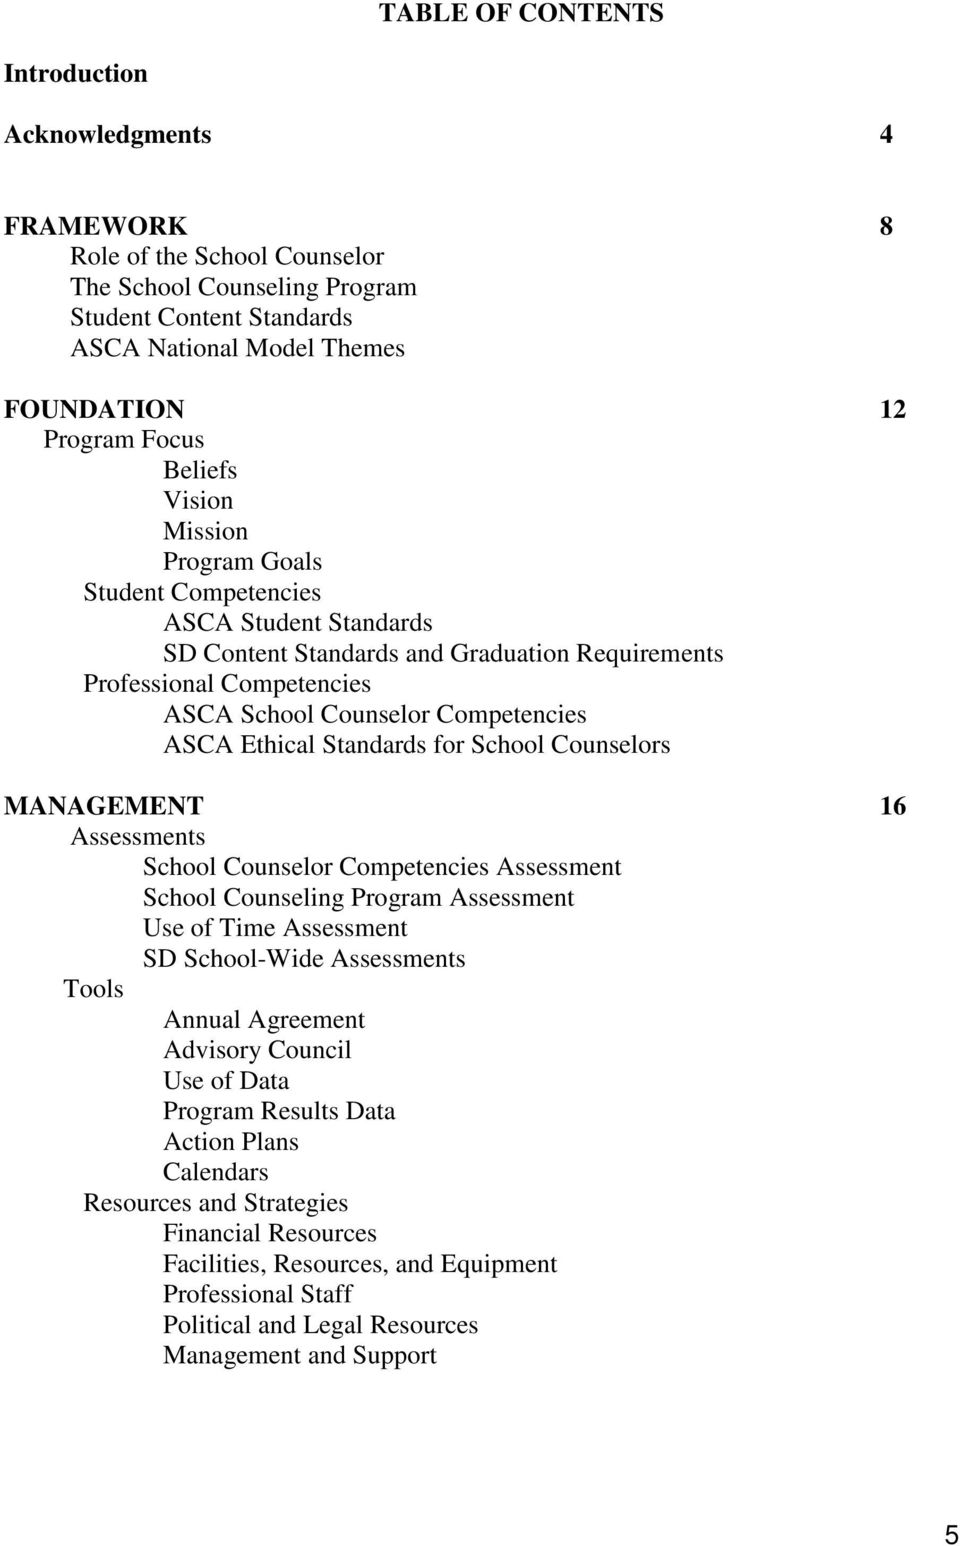 ASCA Ethical Standards for School Counselors MANAGEMENT 16 Assessments School Counselor Competencies Assessment School Counseling Program Assessment Use of Time Assessment SD School-Wide Assessments